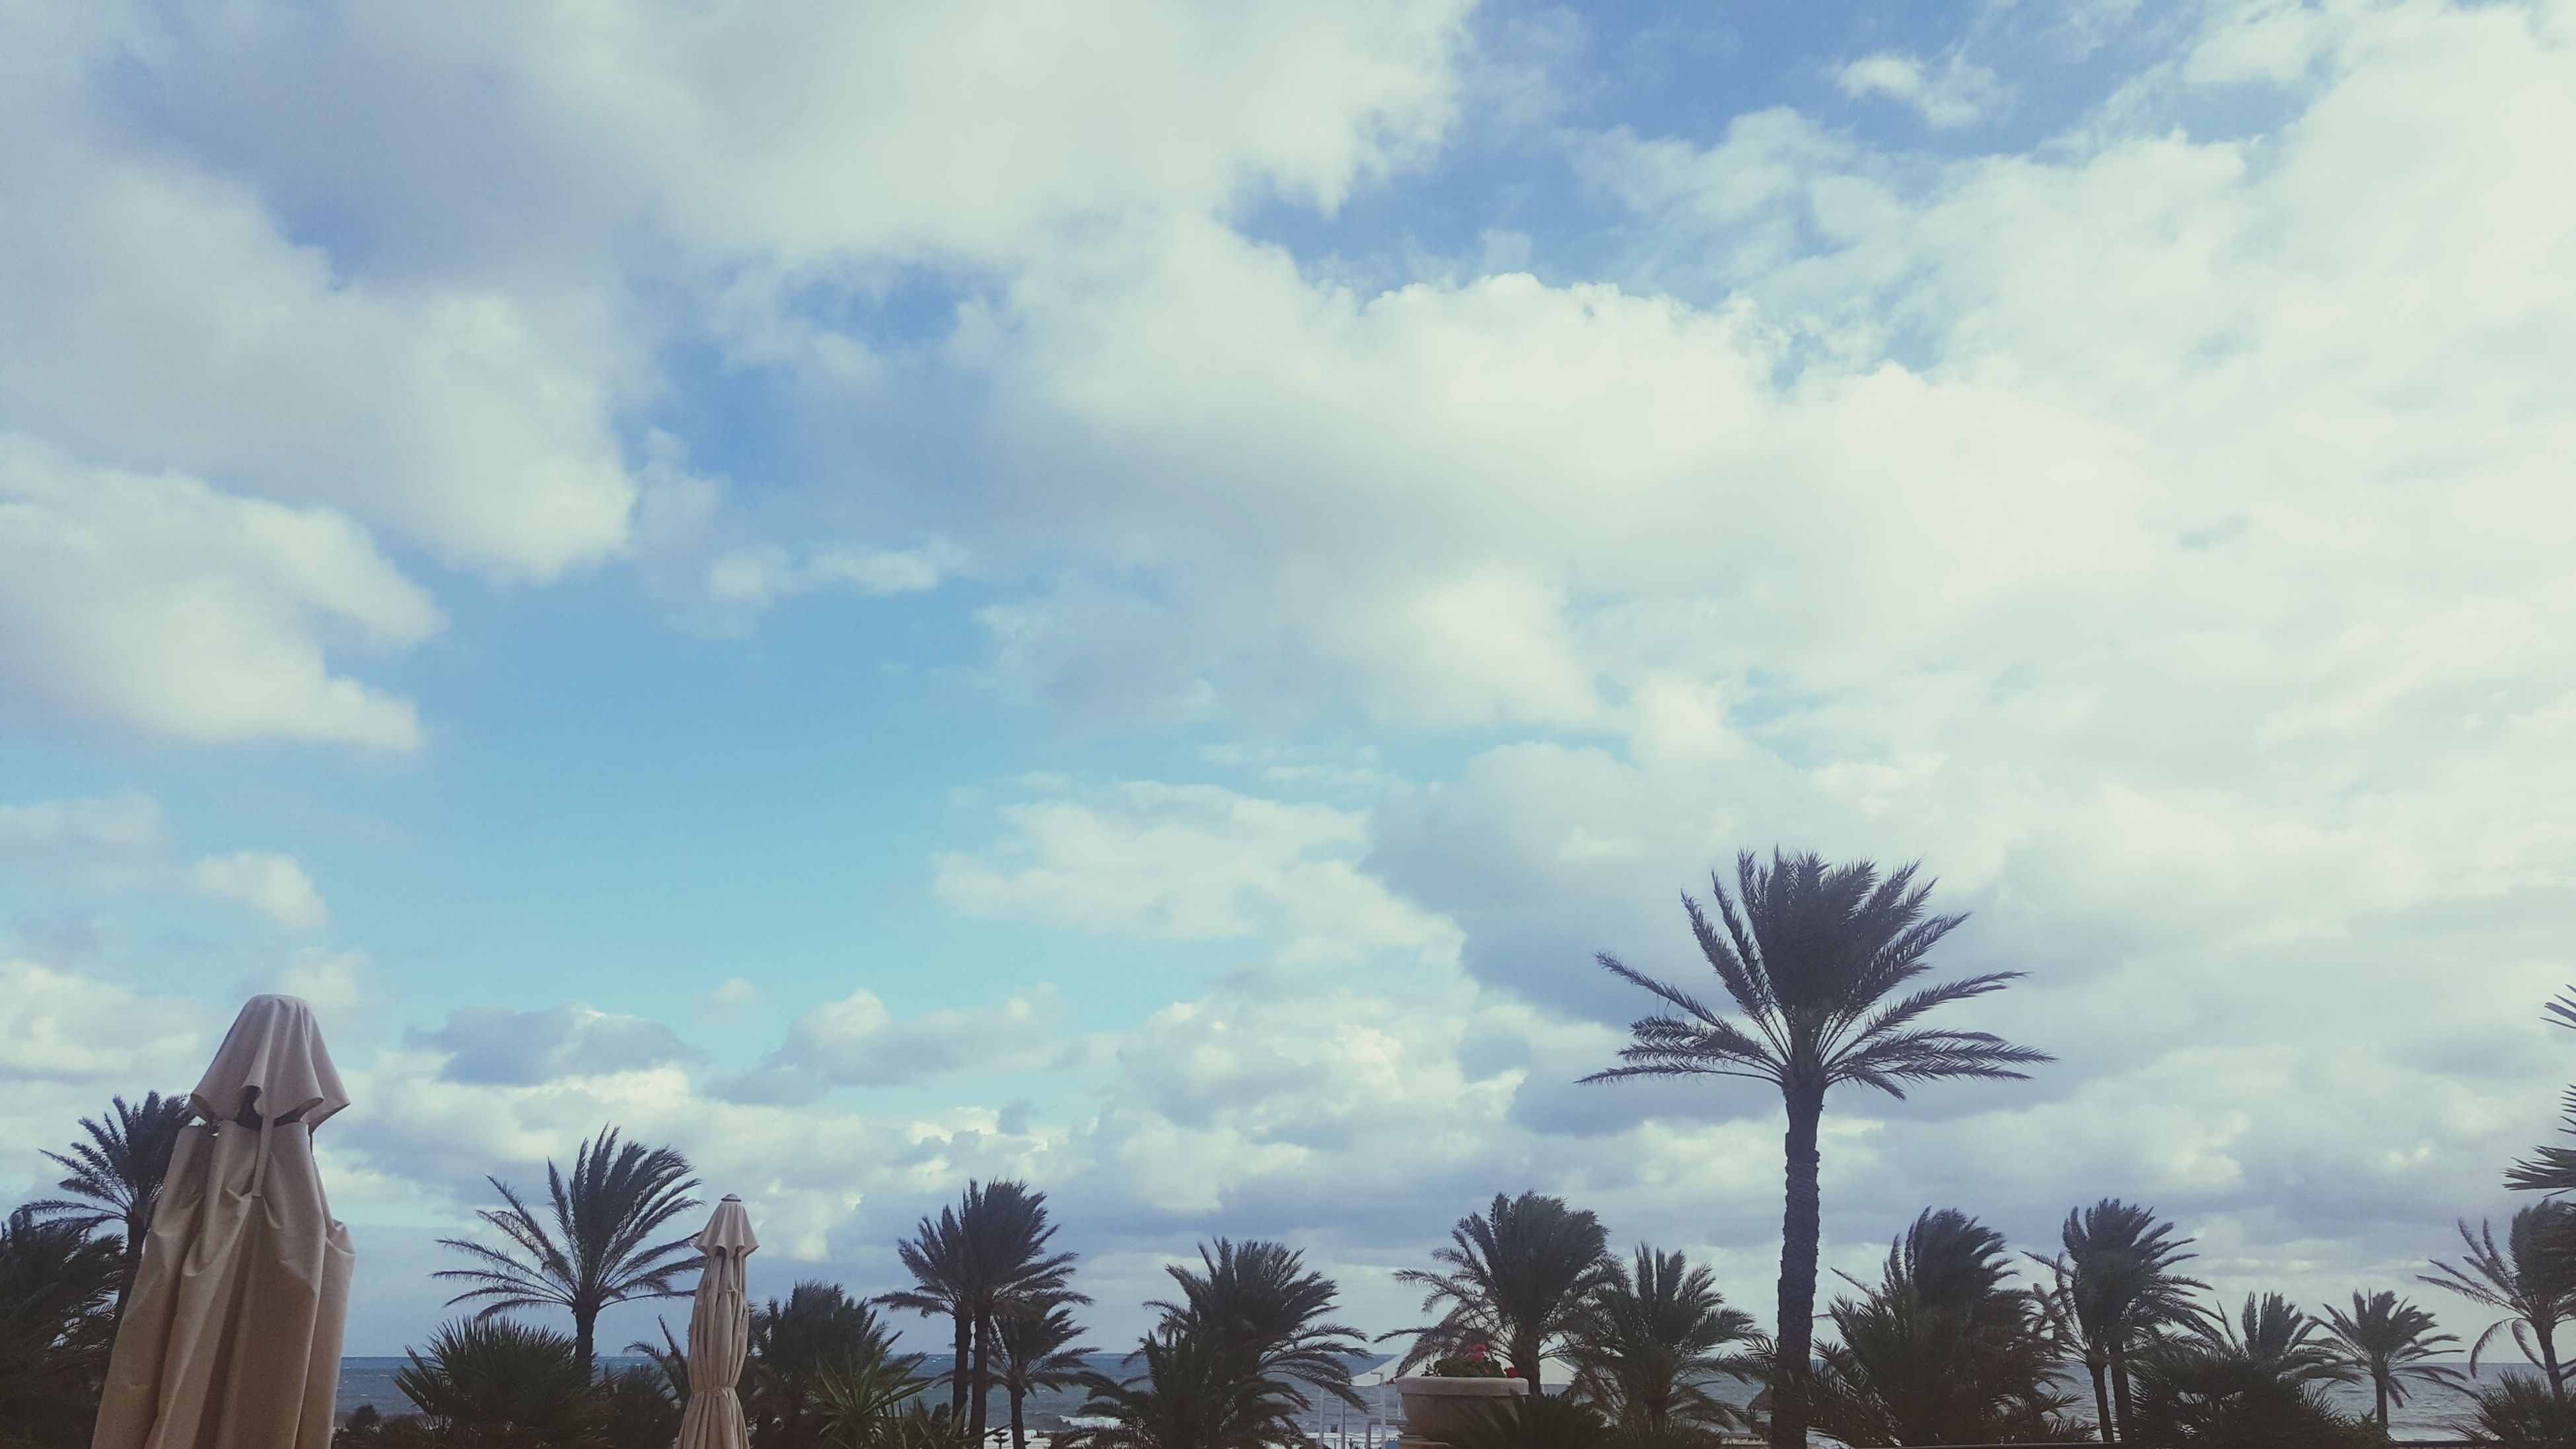 tree, sky, cloud - sky, palm tree, growth, low angle view, nature, beauty in nature, outdoors, no people, treetop, scenics, tranquility, day